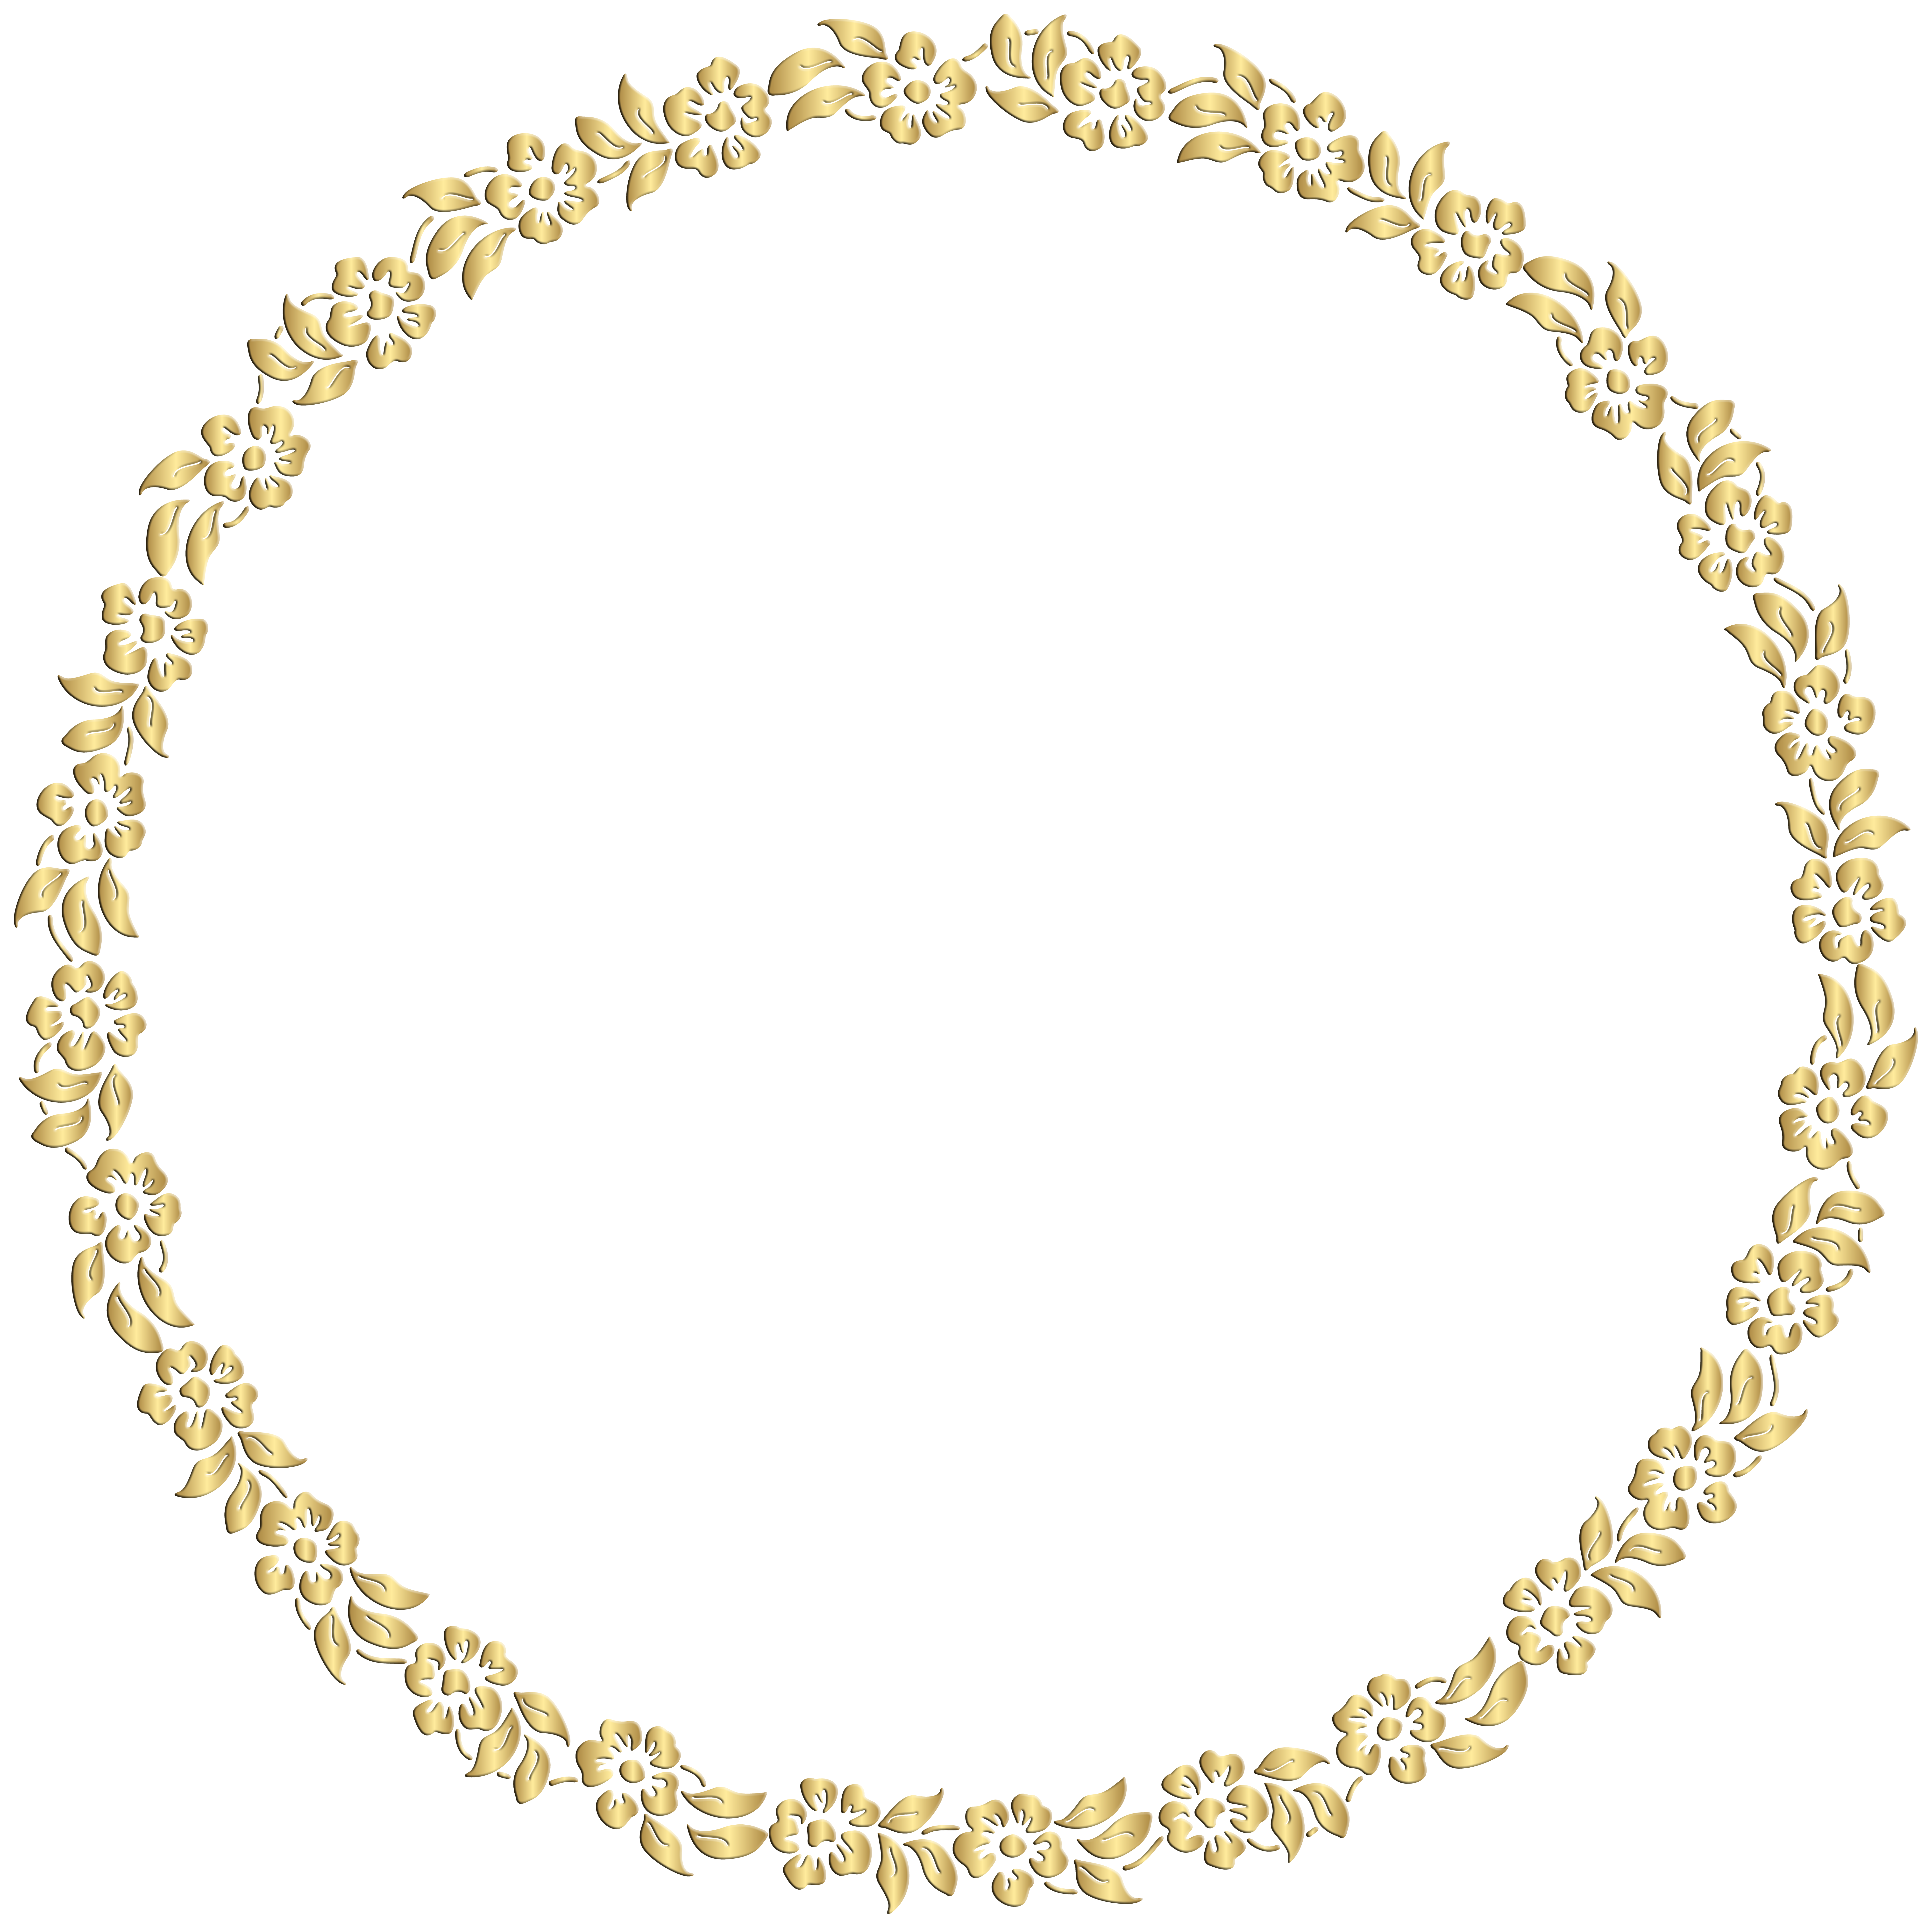 Garland clipart pendant. Necklace at getdrawings com